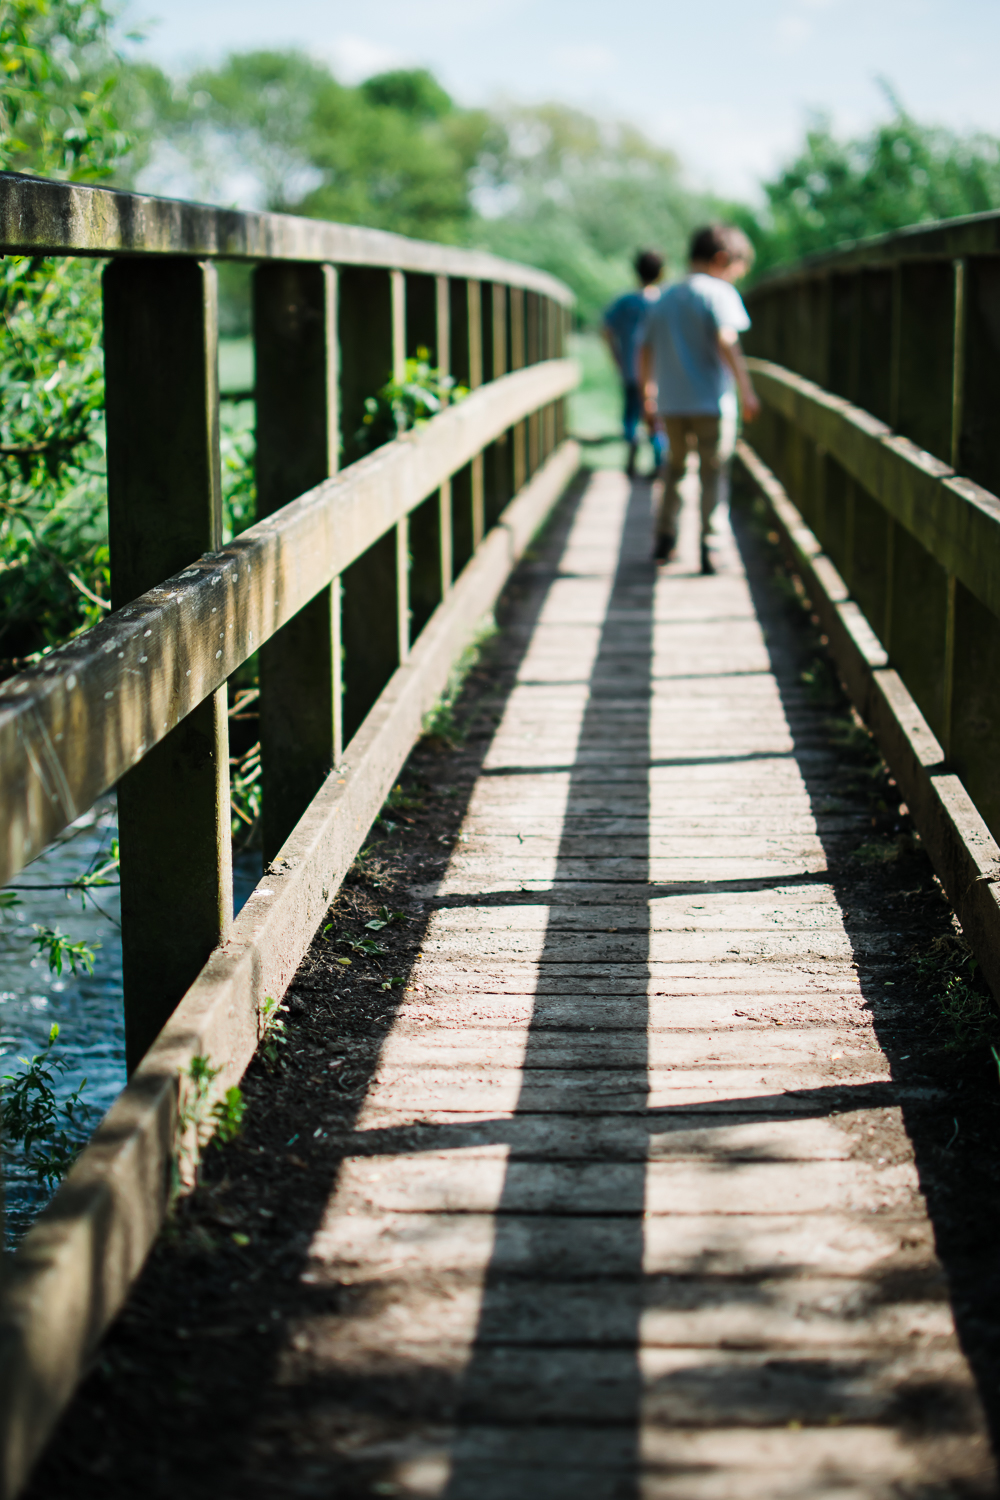 Lines and shadows on a bridge at Houghton Meadows, Huntingdon